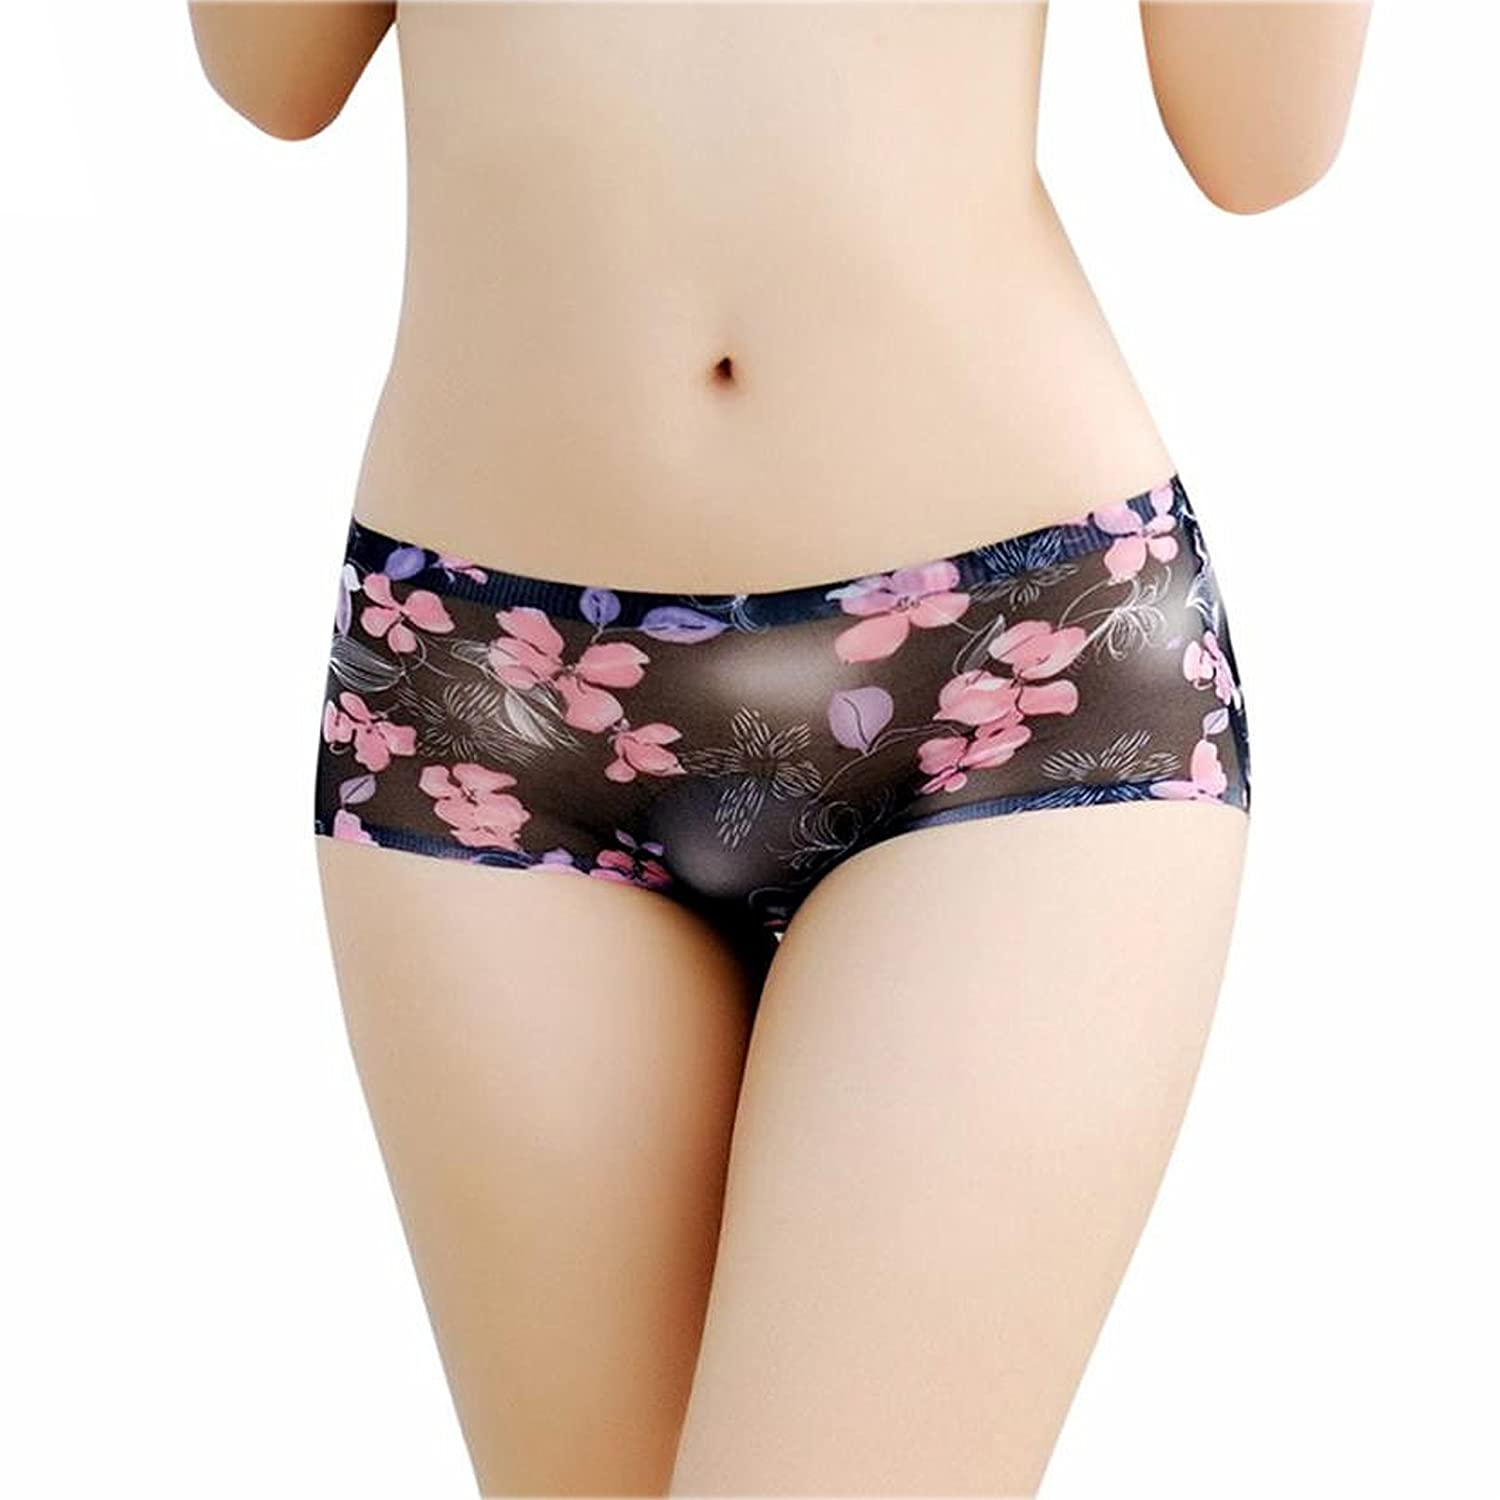 fd5d7fb7c10b Amorza Sexy Transparent Lace Panties Seamless Low Waist Printed Briefs  Panties Thongs Boyshort Lingerie Underwear Black: Amazon.in: Clothing &  Accessories